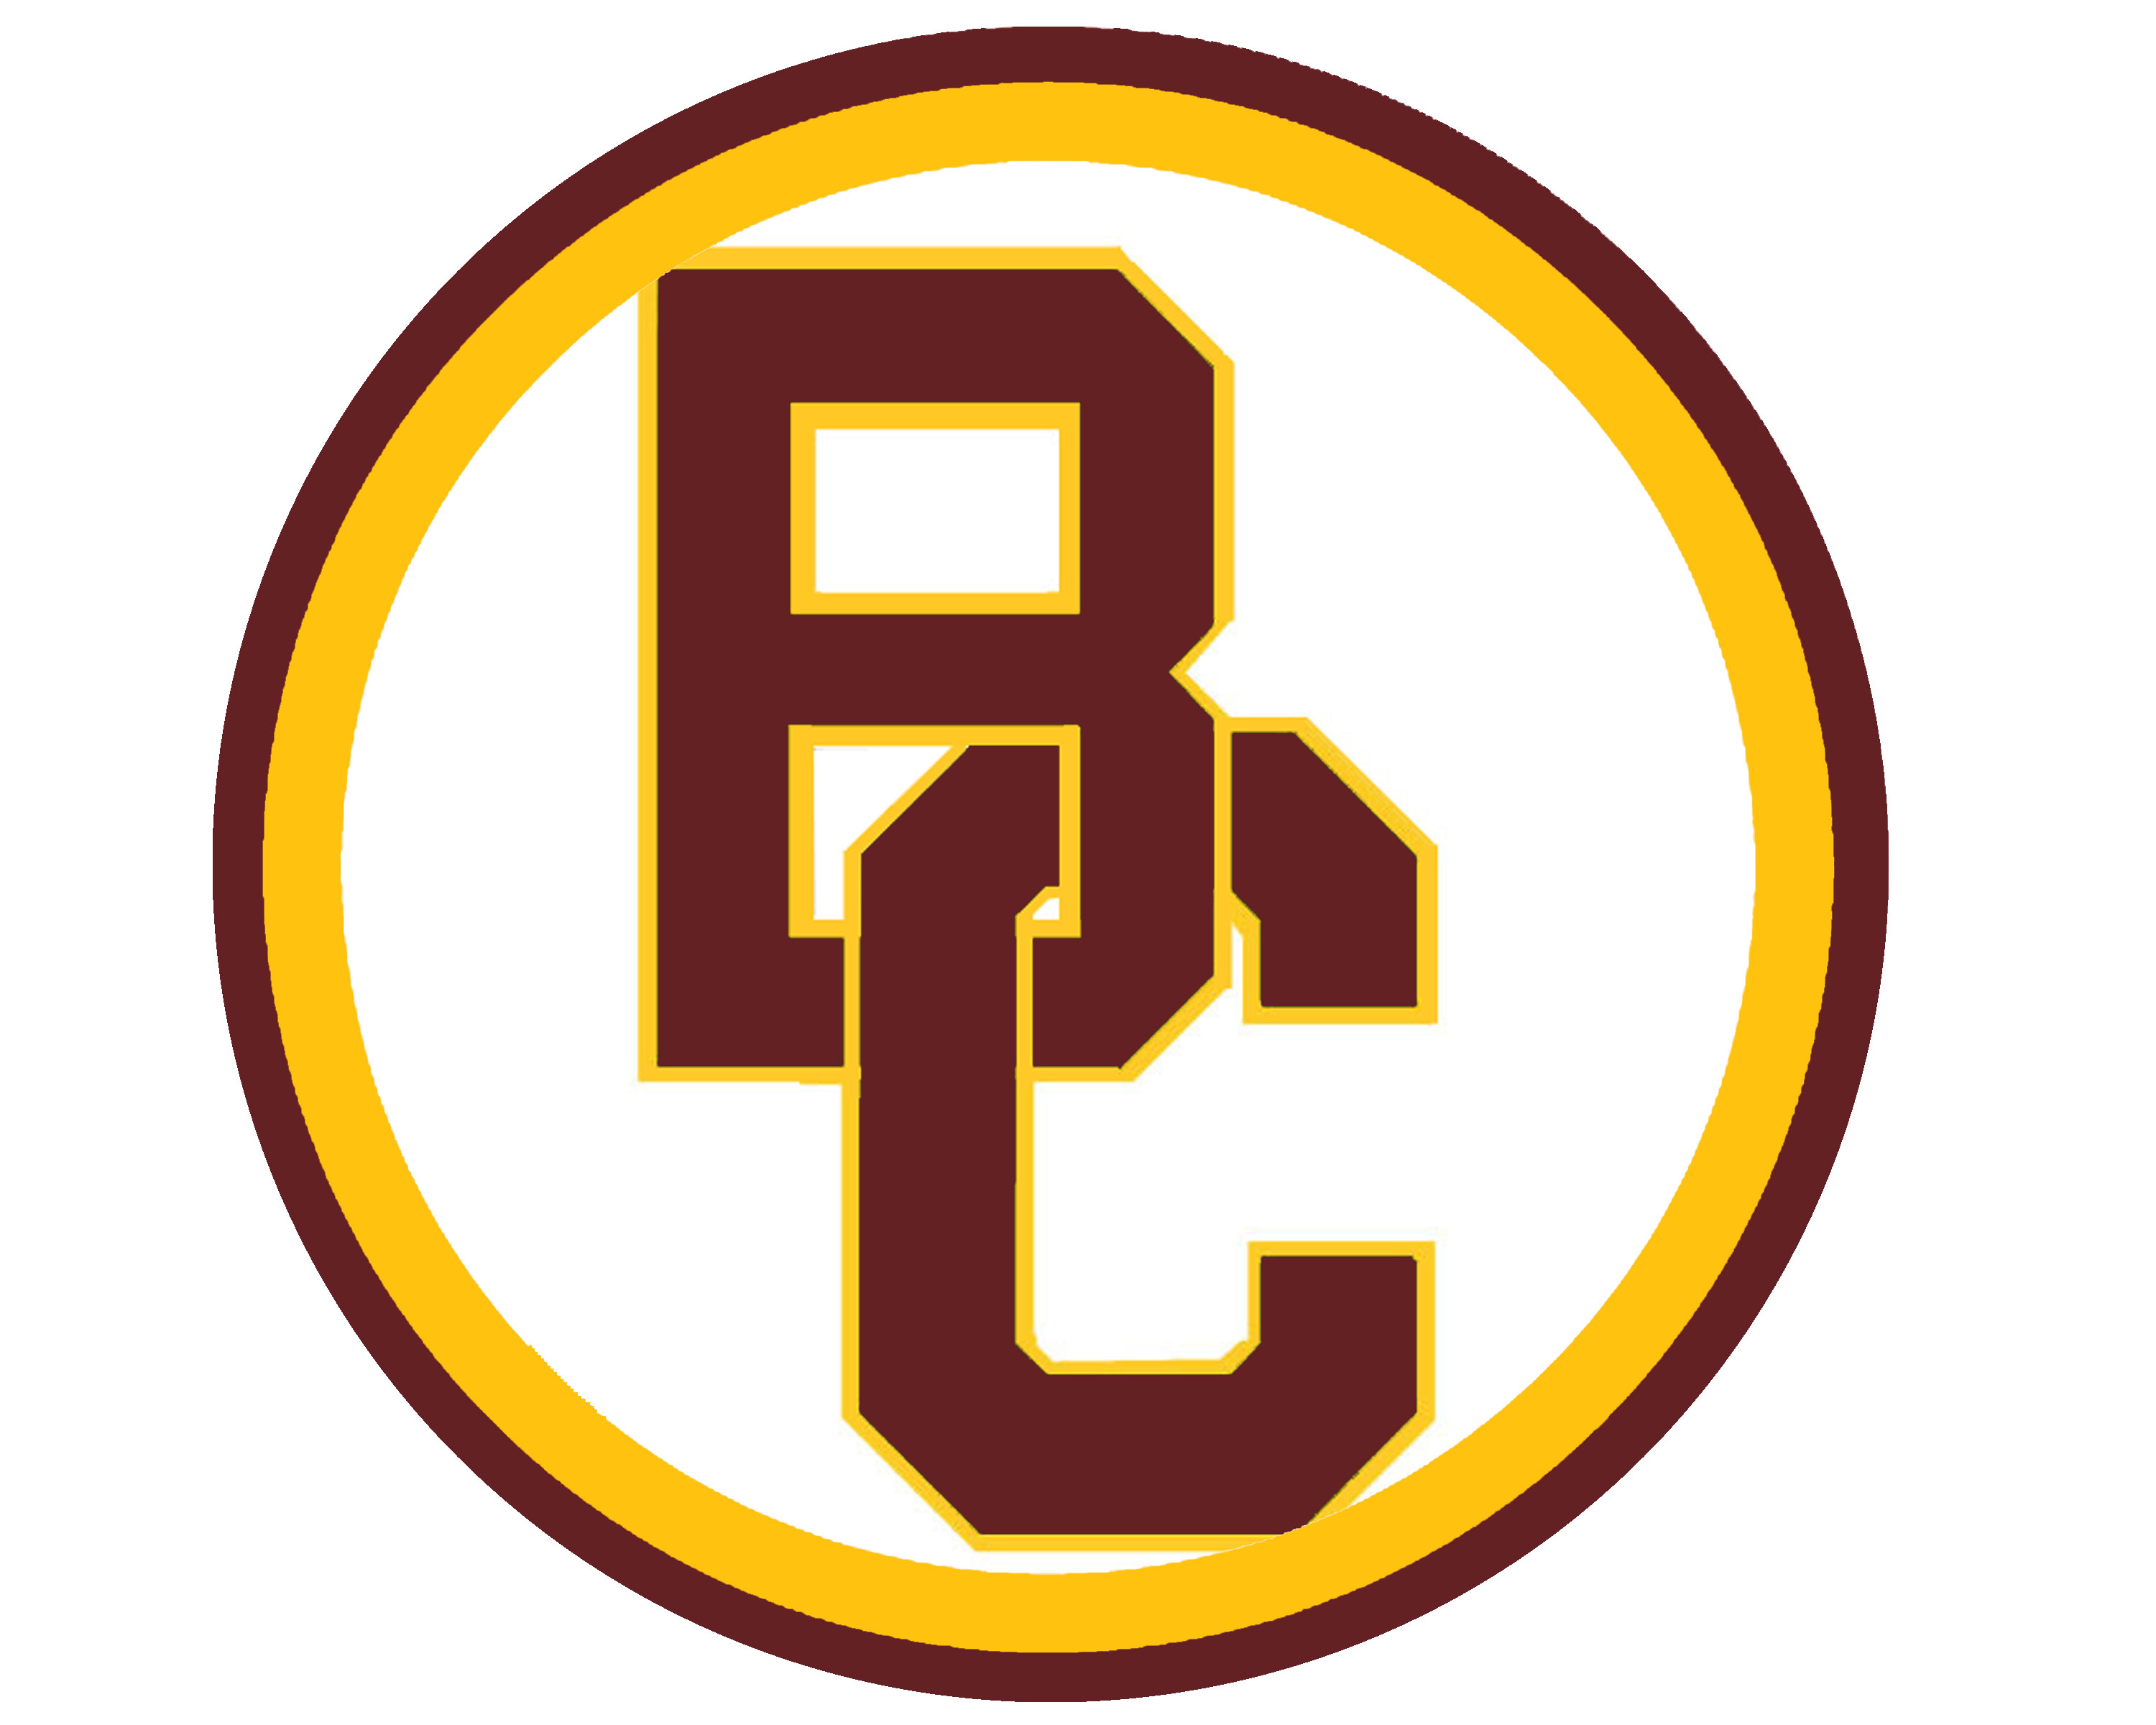 circle BC logo burgundy and gold